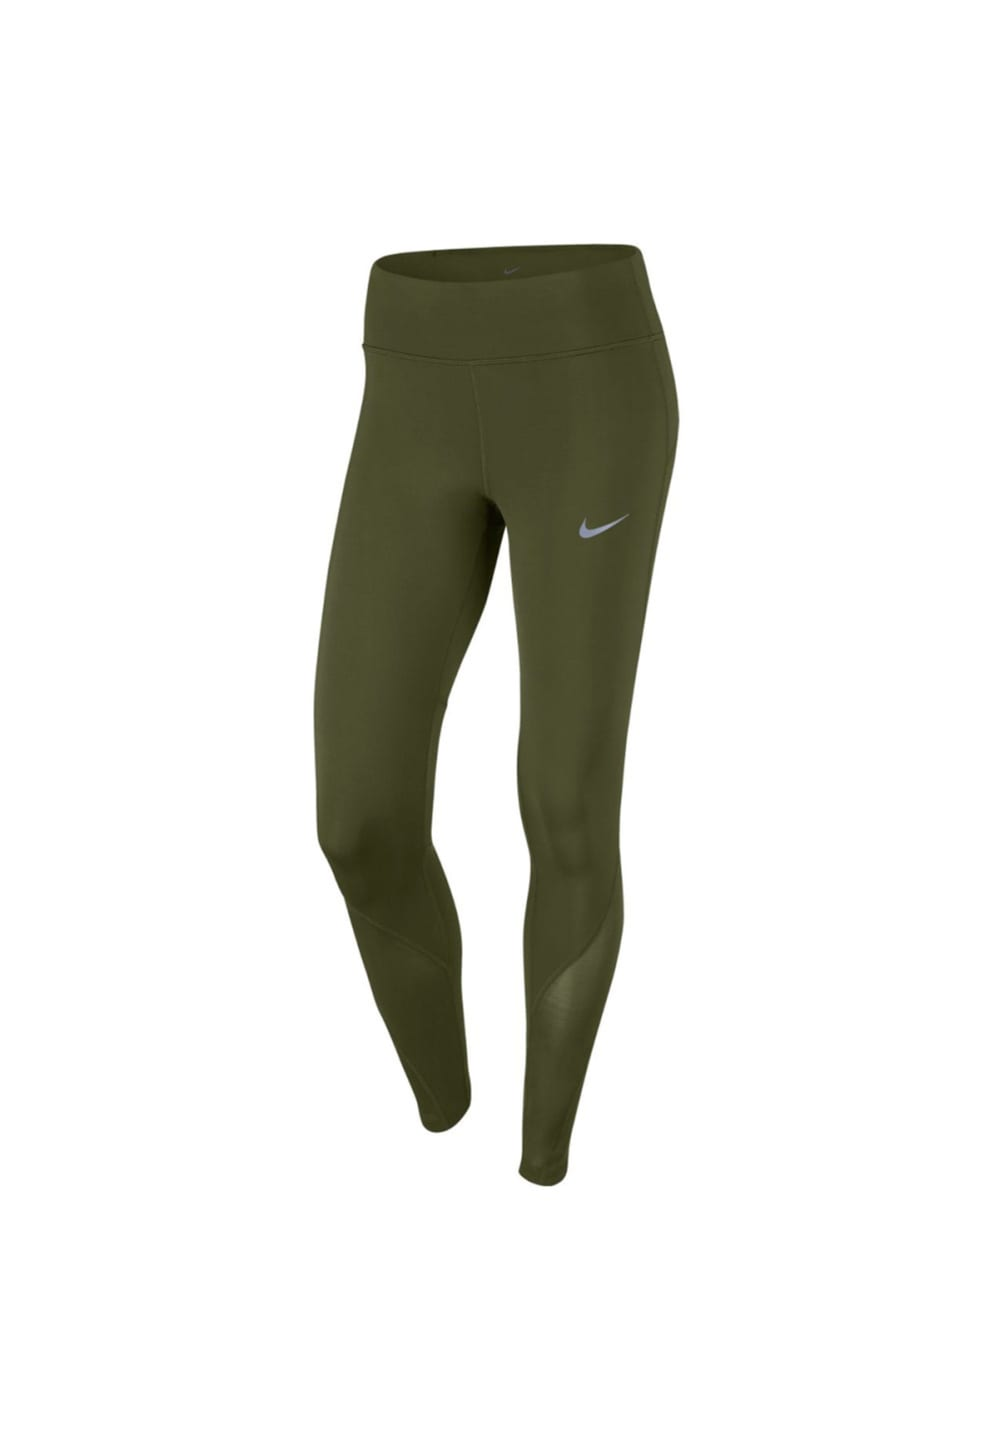 06f4a379cb6fd Nike Power Epic Lux Tight - Running trousers for Women - Green | 21RUN